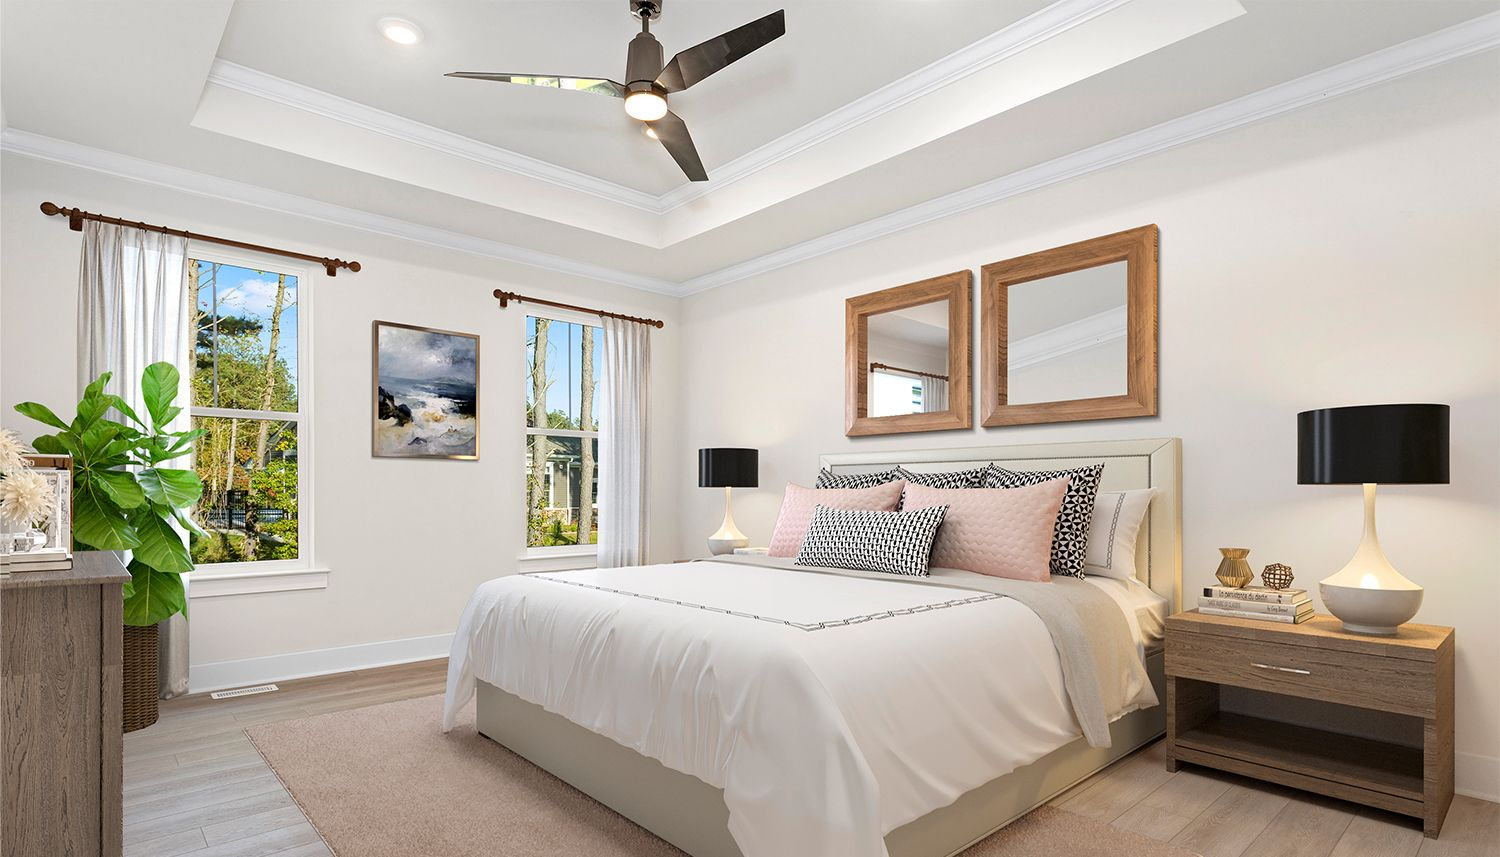 Bedroom featured in the Latitude By DRB Coastal in Sussex, DE